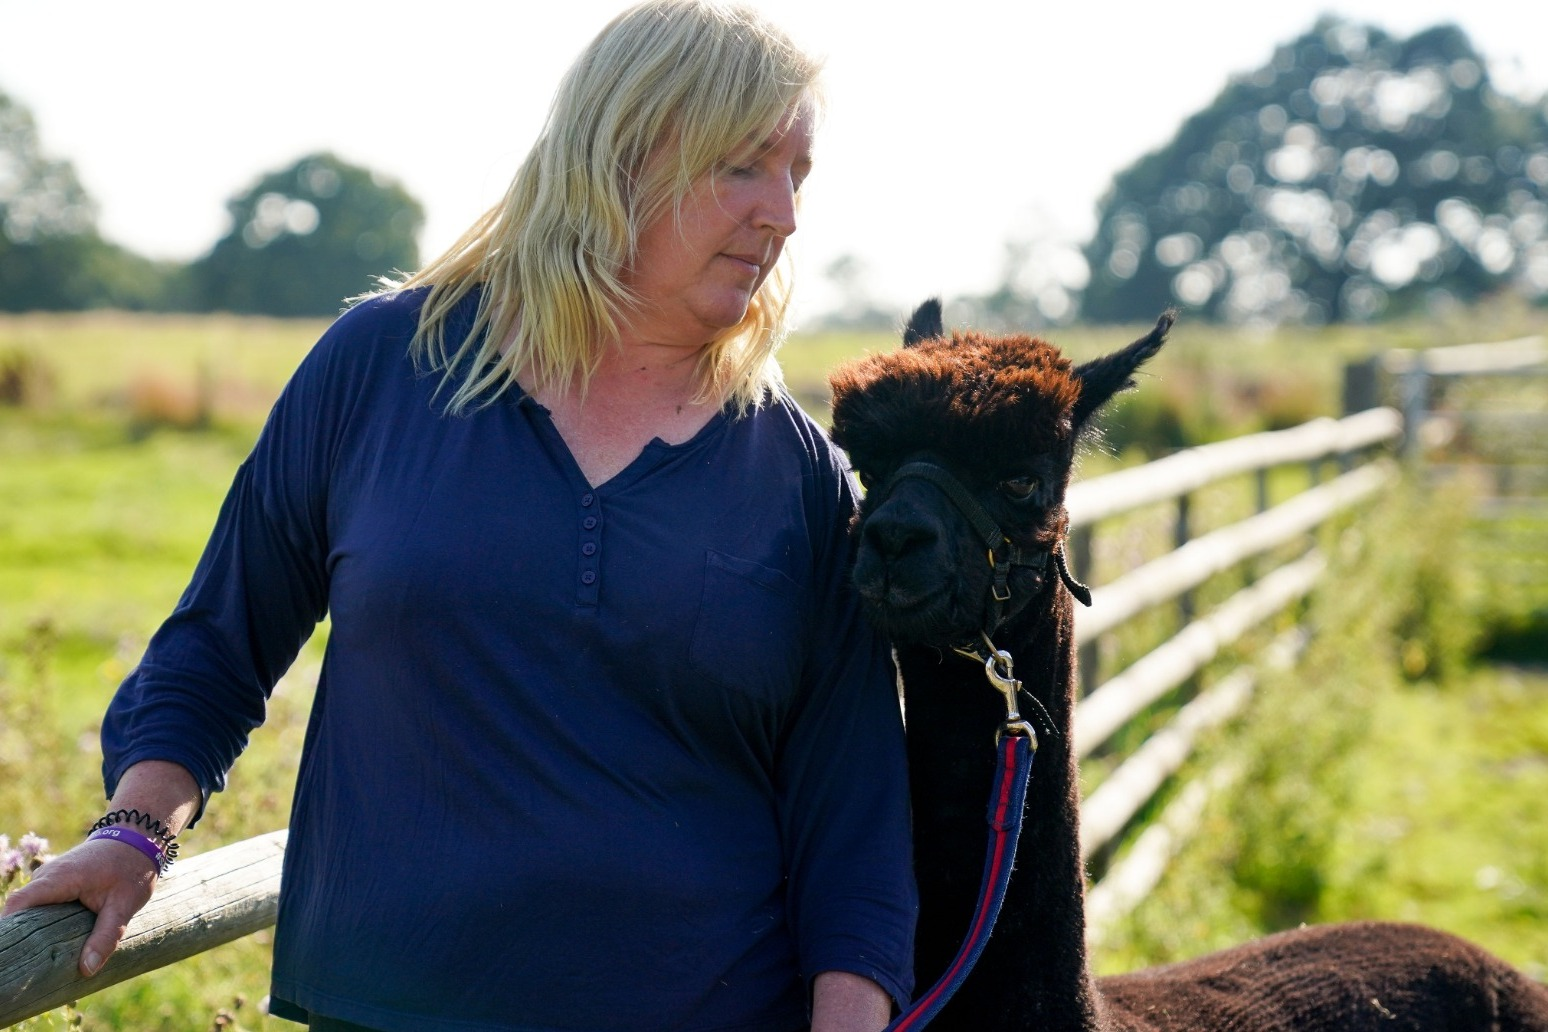 Owner of condemned alpaca Geronimo vows to 'fight on'